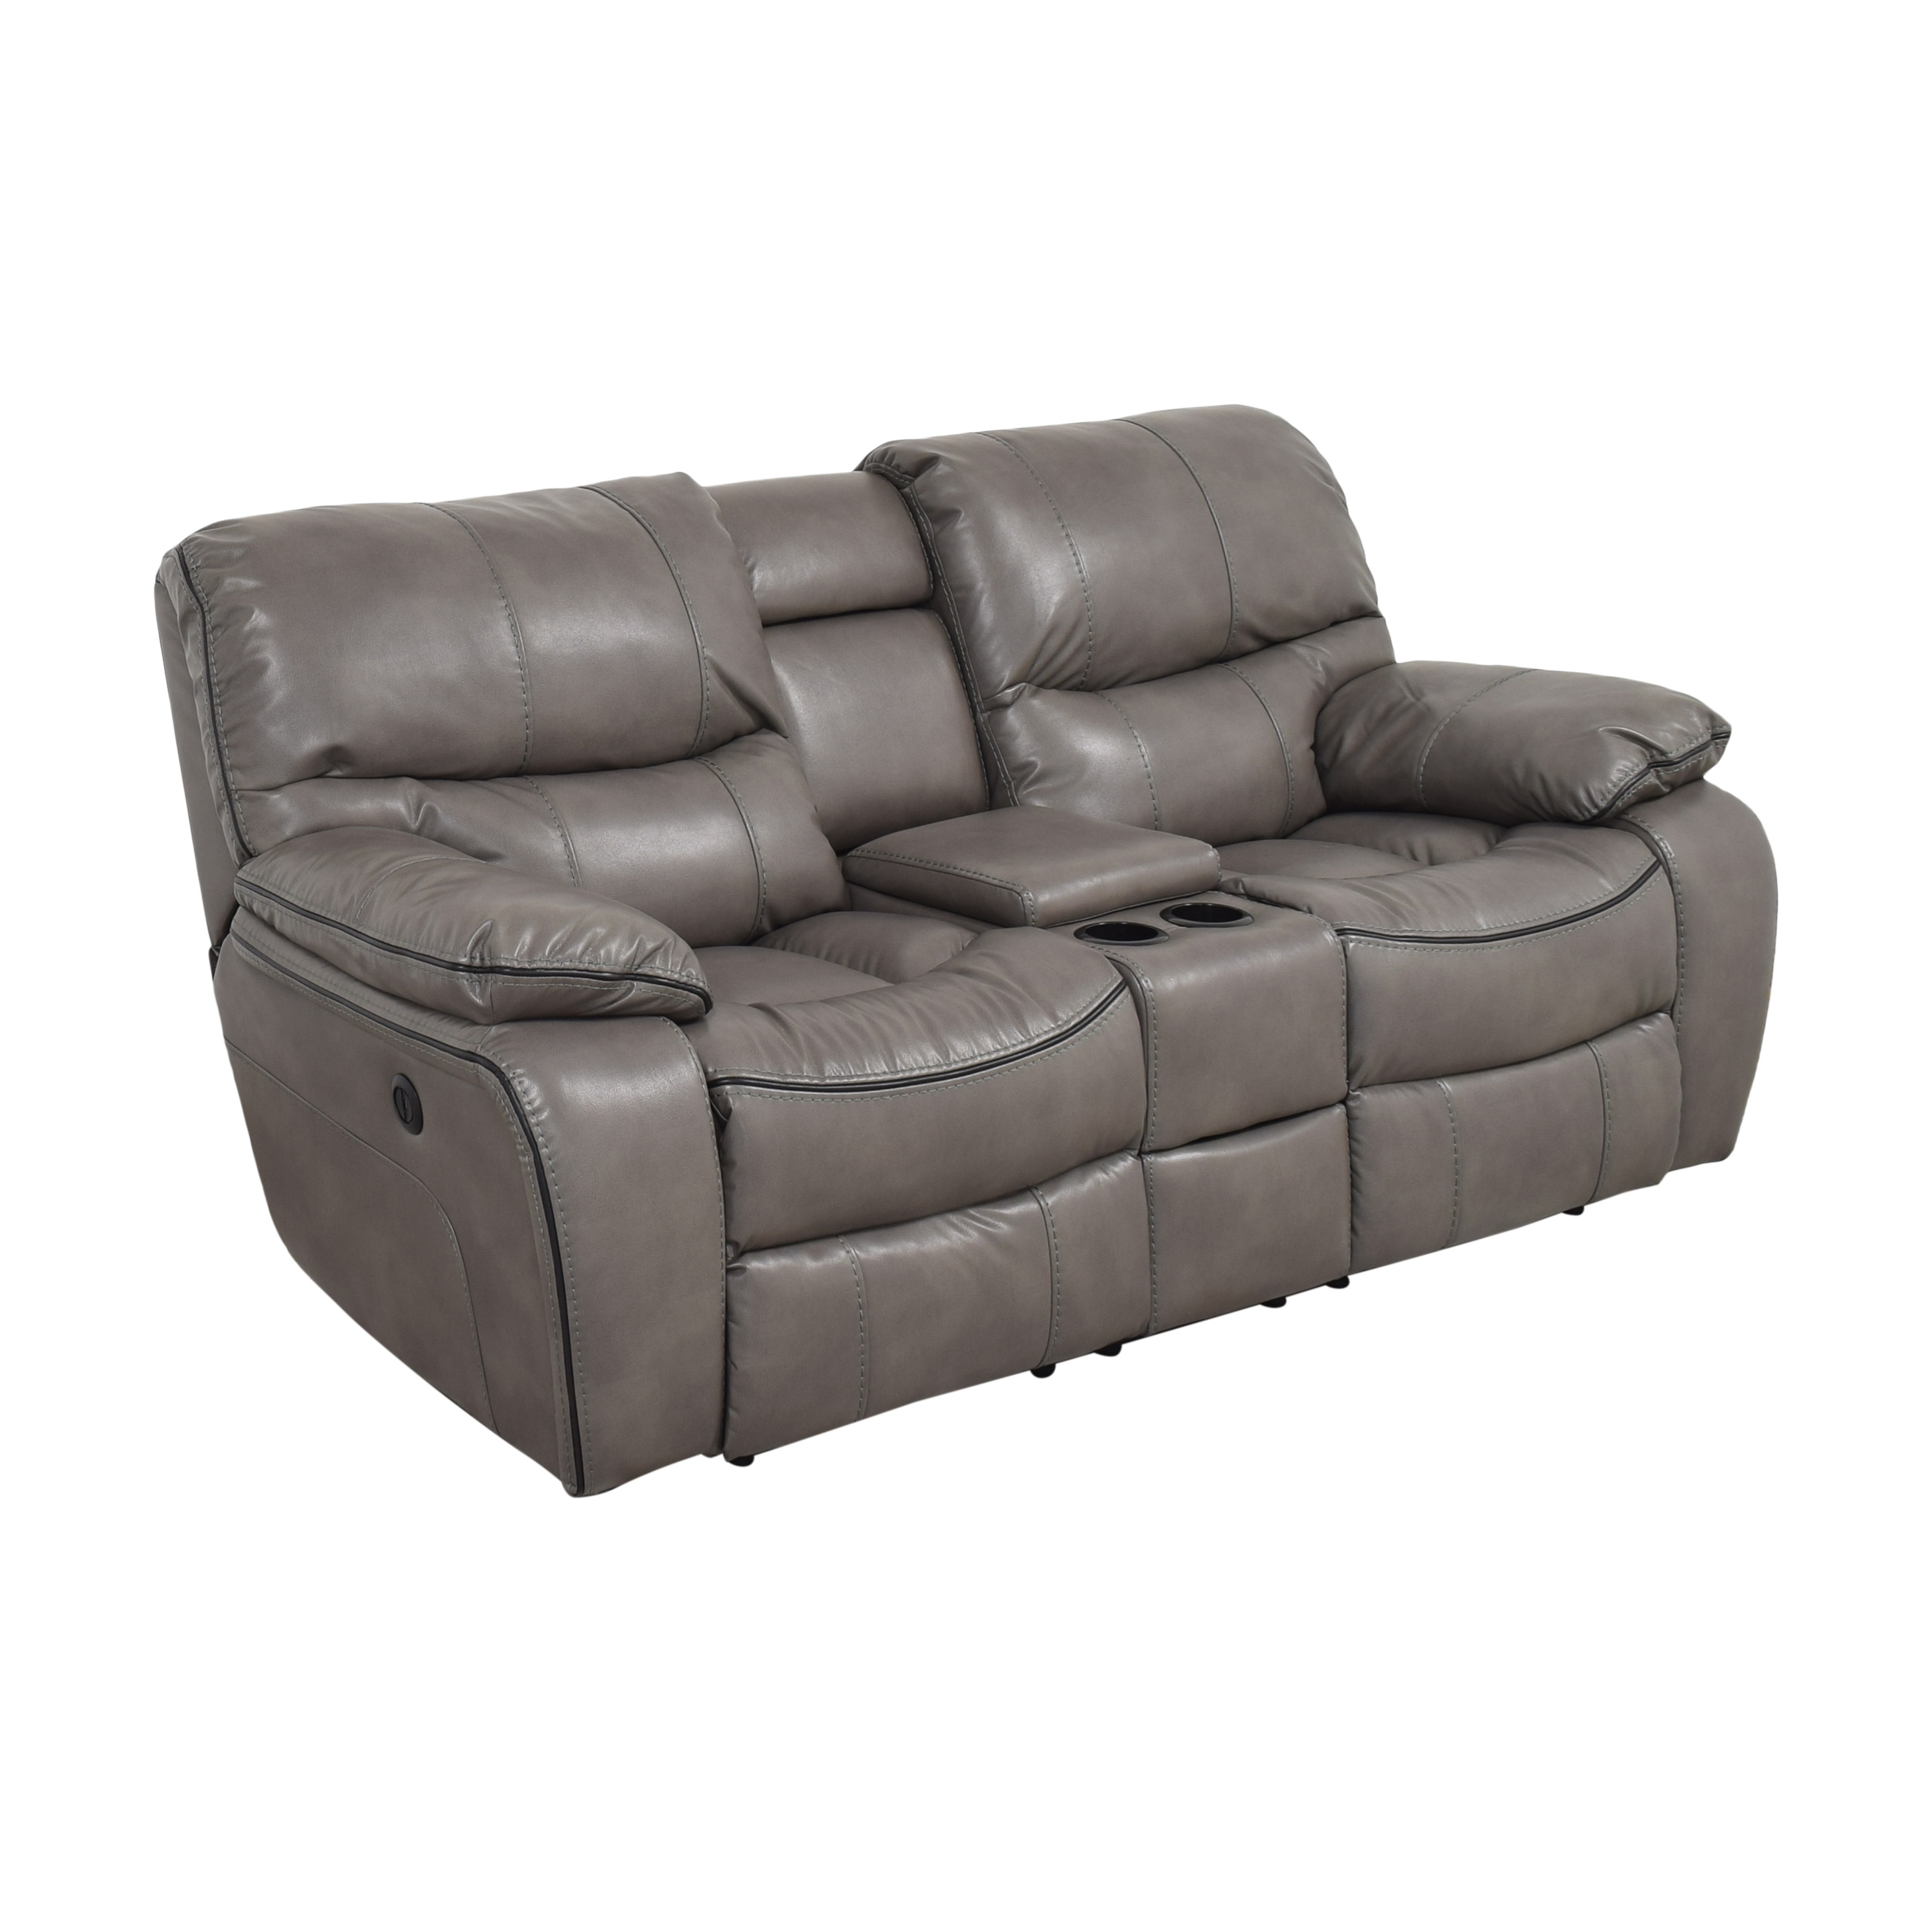 Bob's Discount Furniture Bob's Avenger Power Reclining Console Loveseat for sale